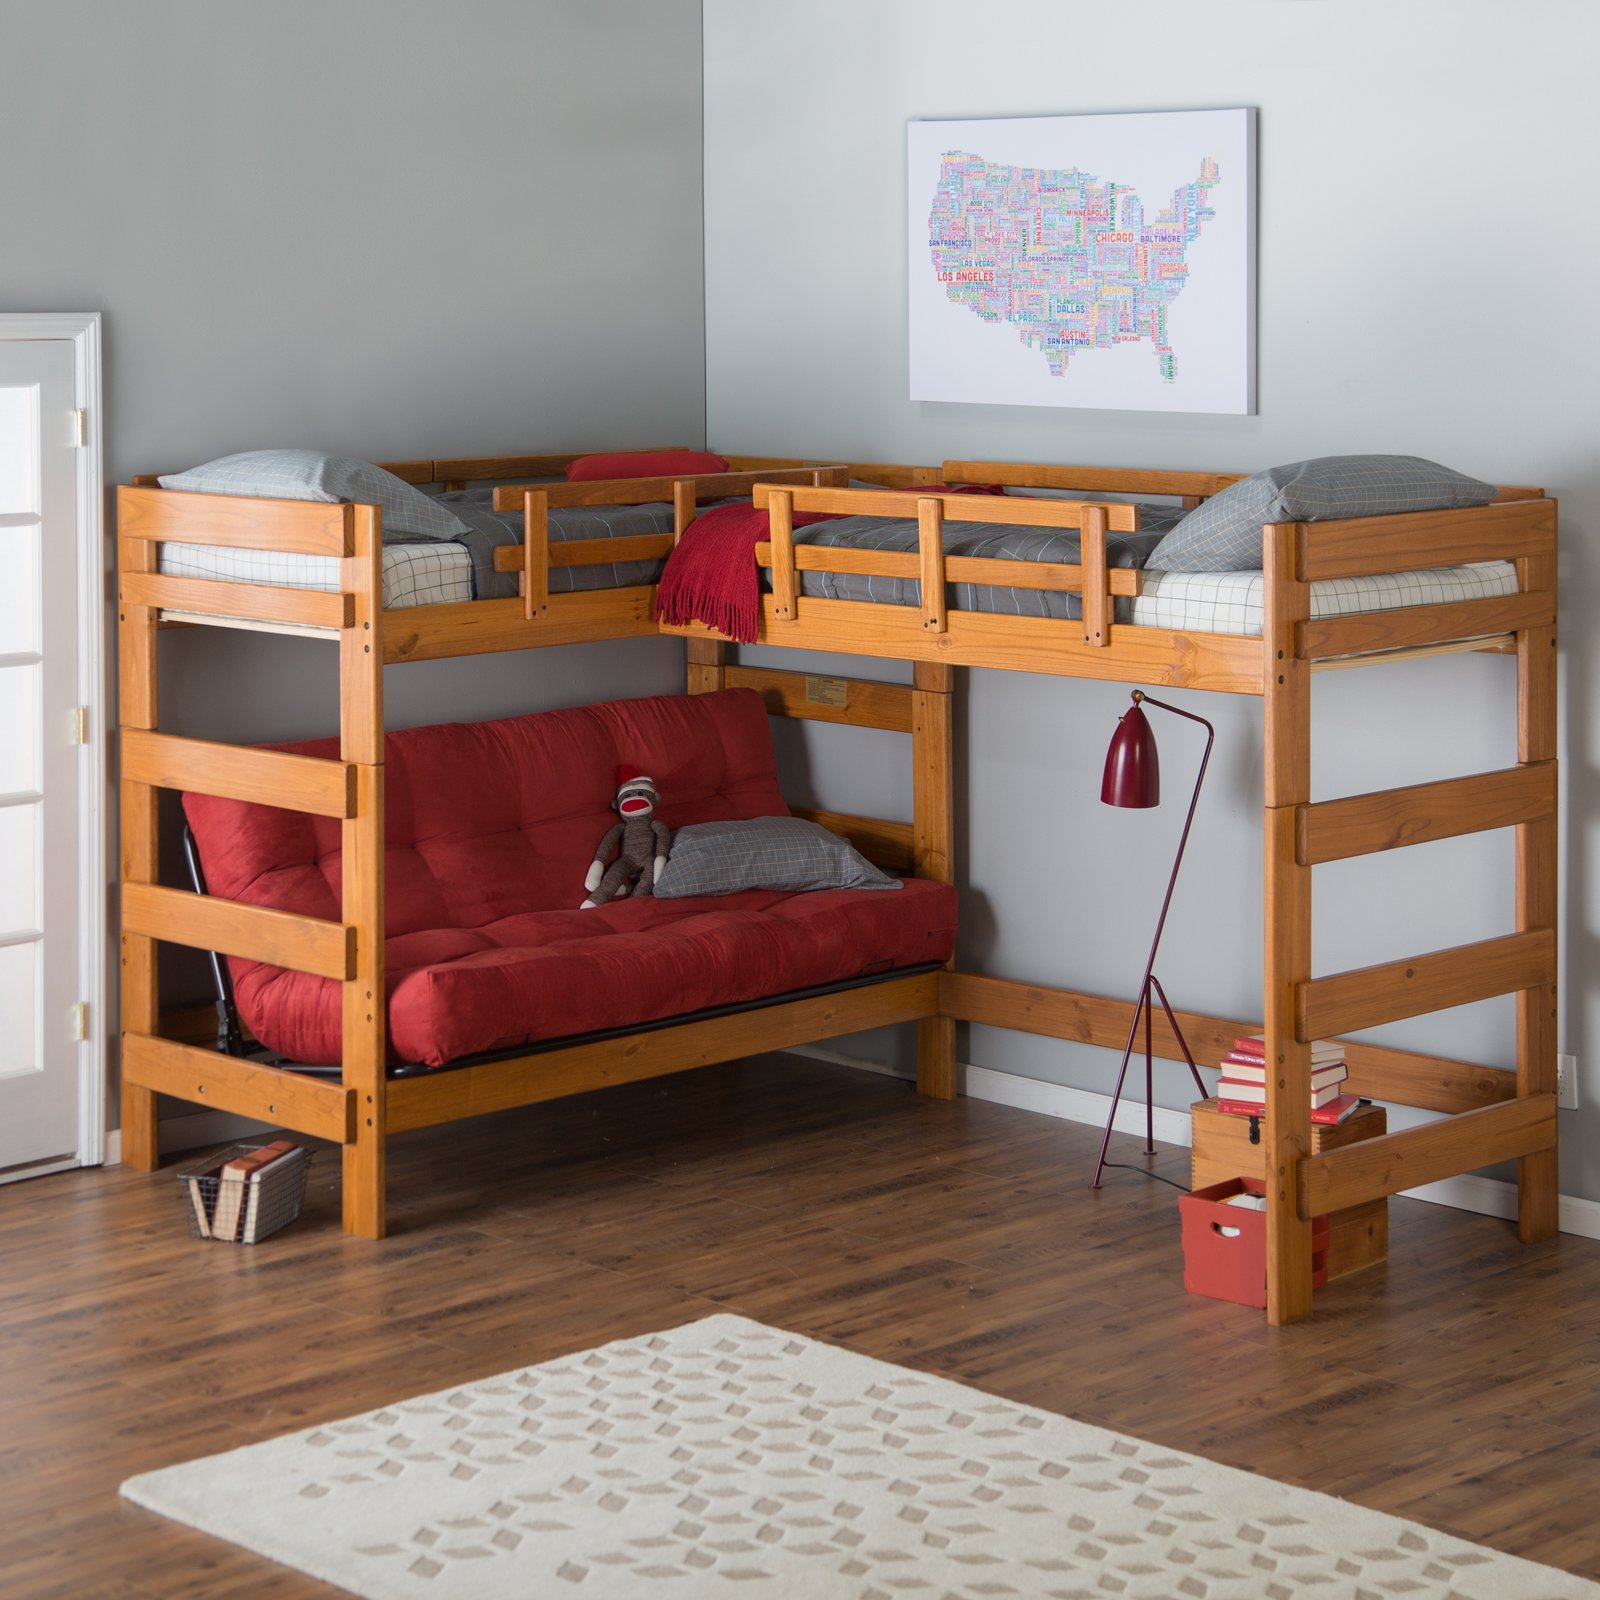 Diy Storage Bunk Beds